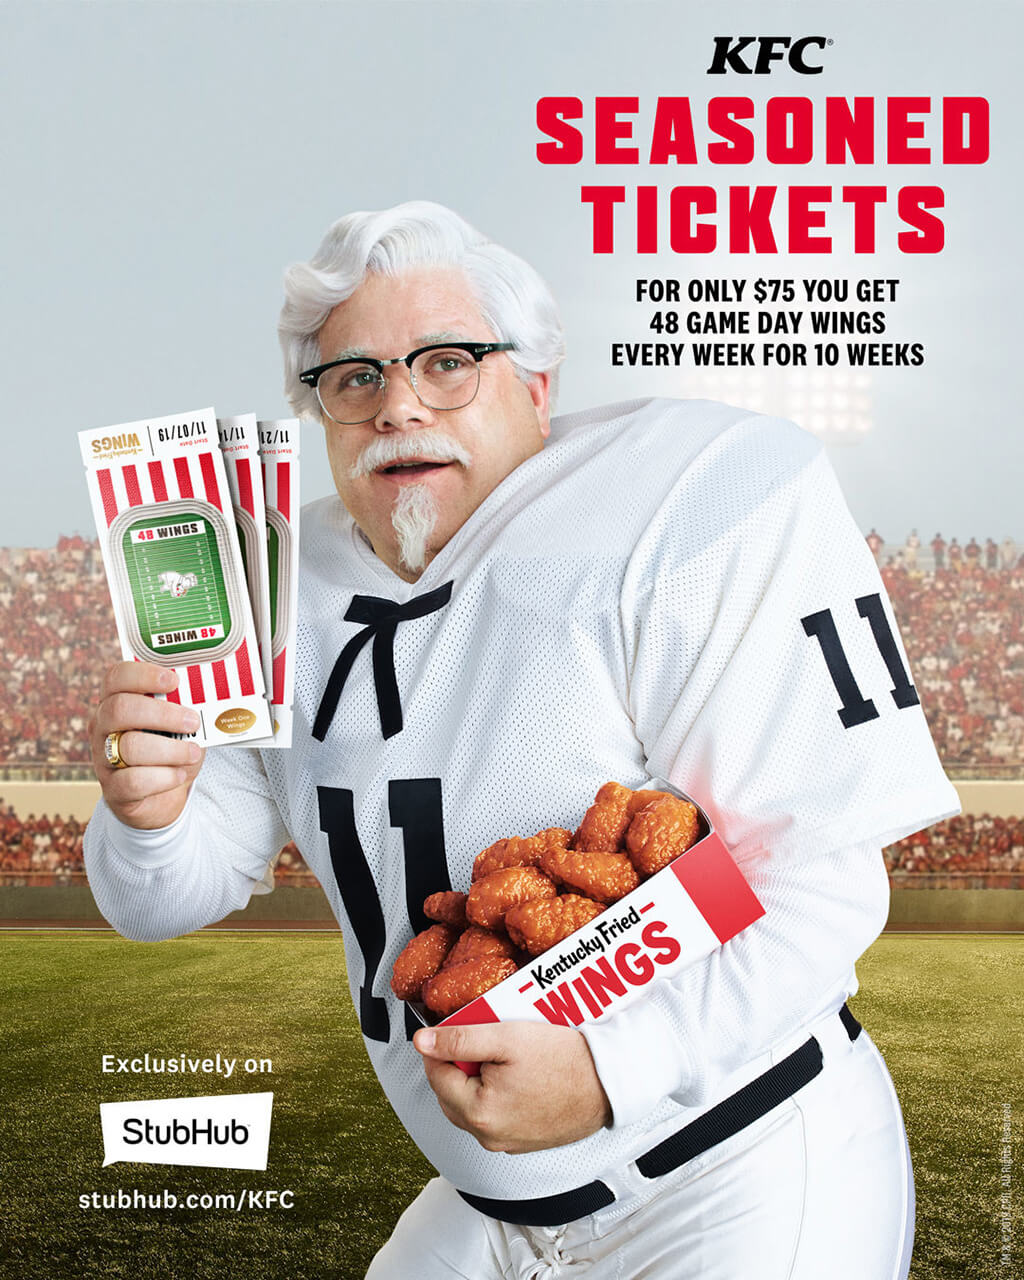 KFC's Seasoned Tickets in conjunction with StubHub